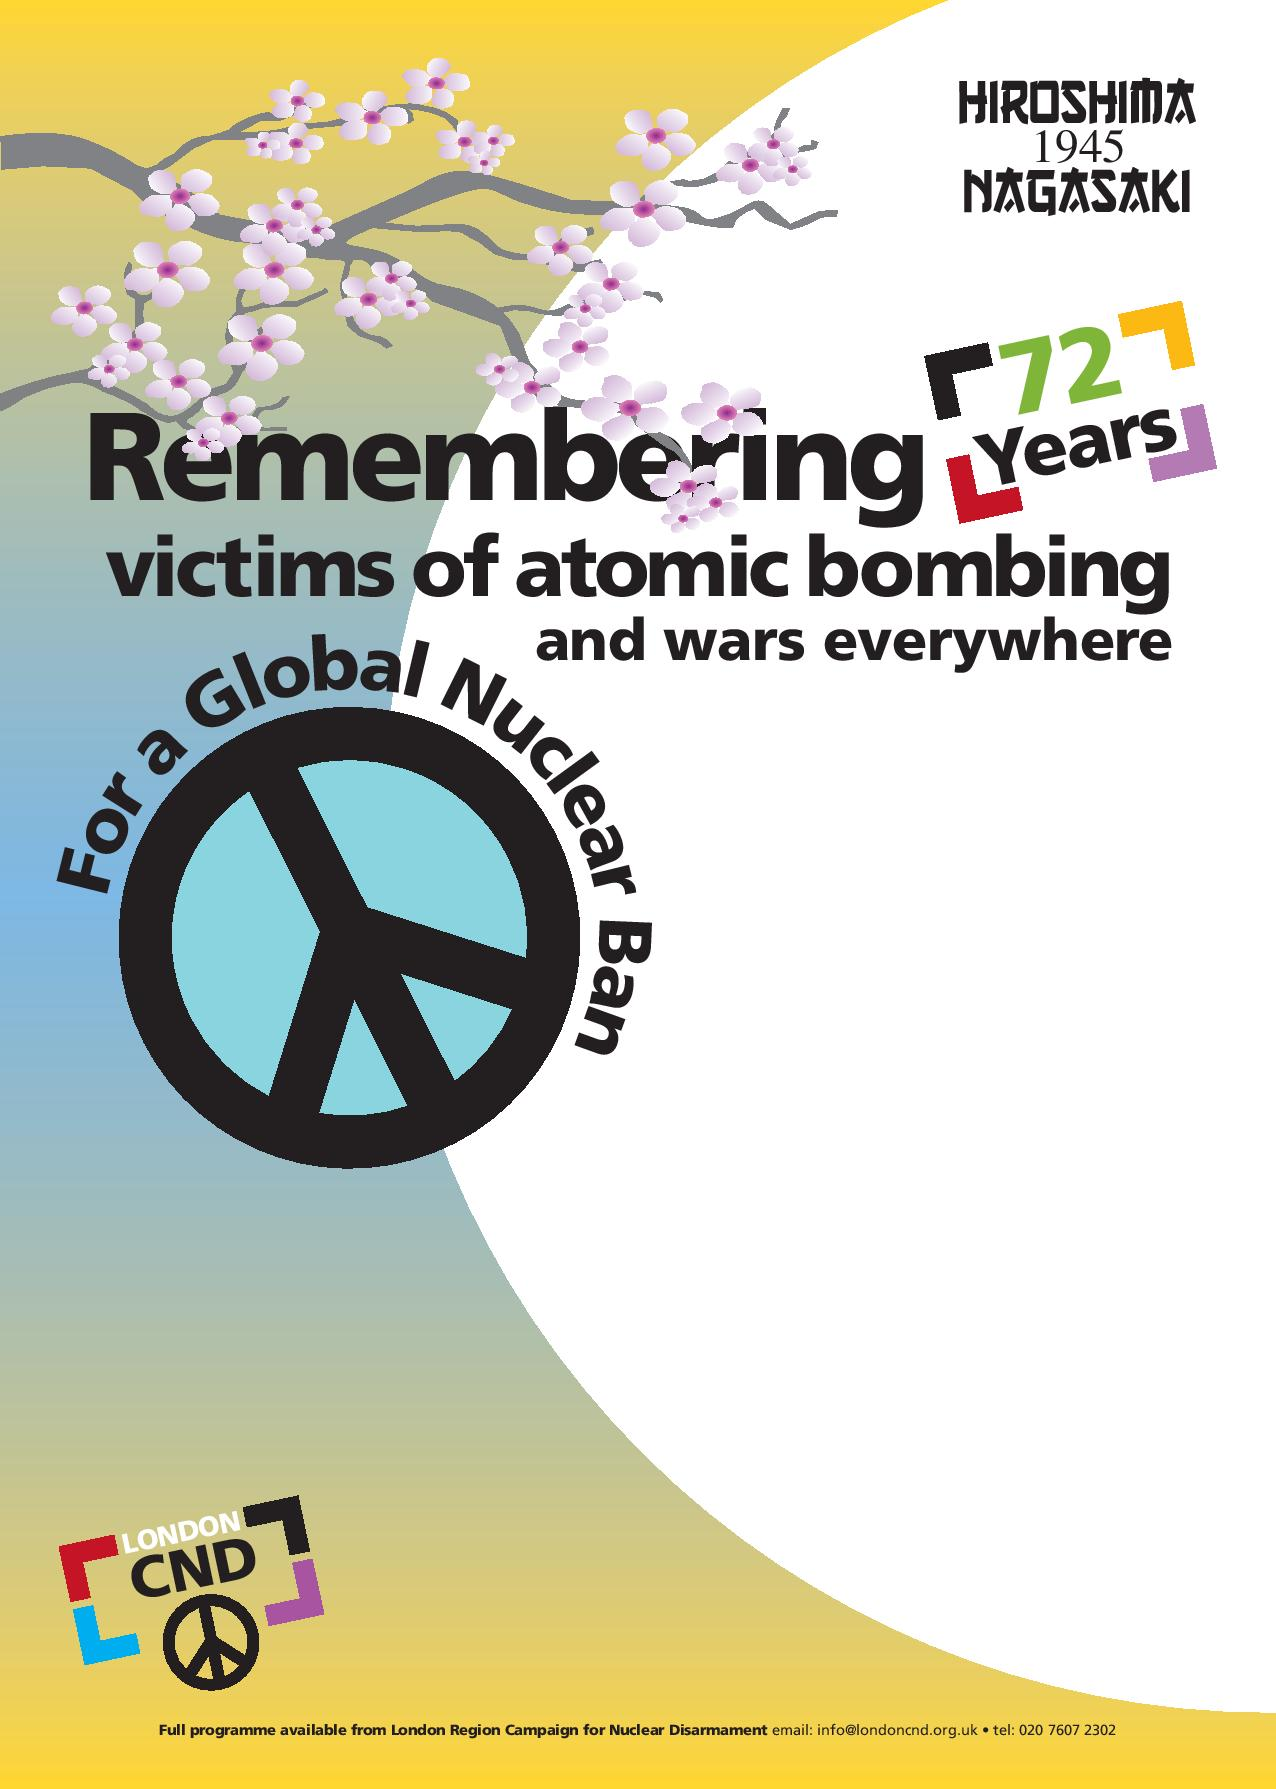 Download 2017 Hiroshima and Nagasaki Event Poster - AA4 poster design, left blank for you to add information about your own local events.Here is an example of how to use this template.